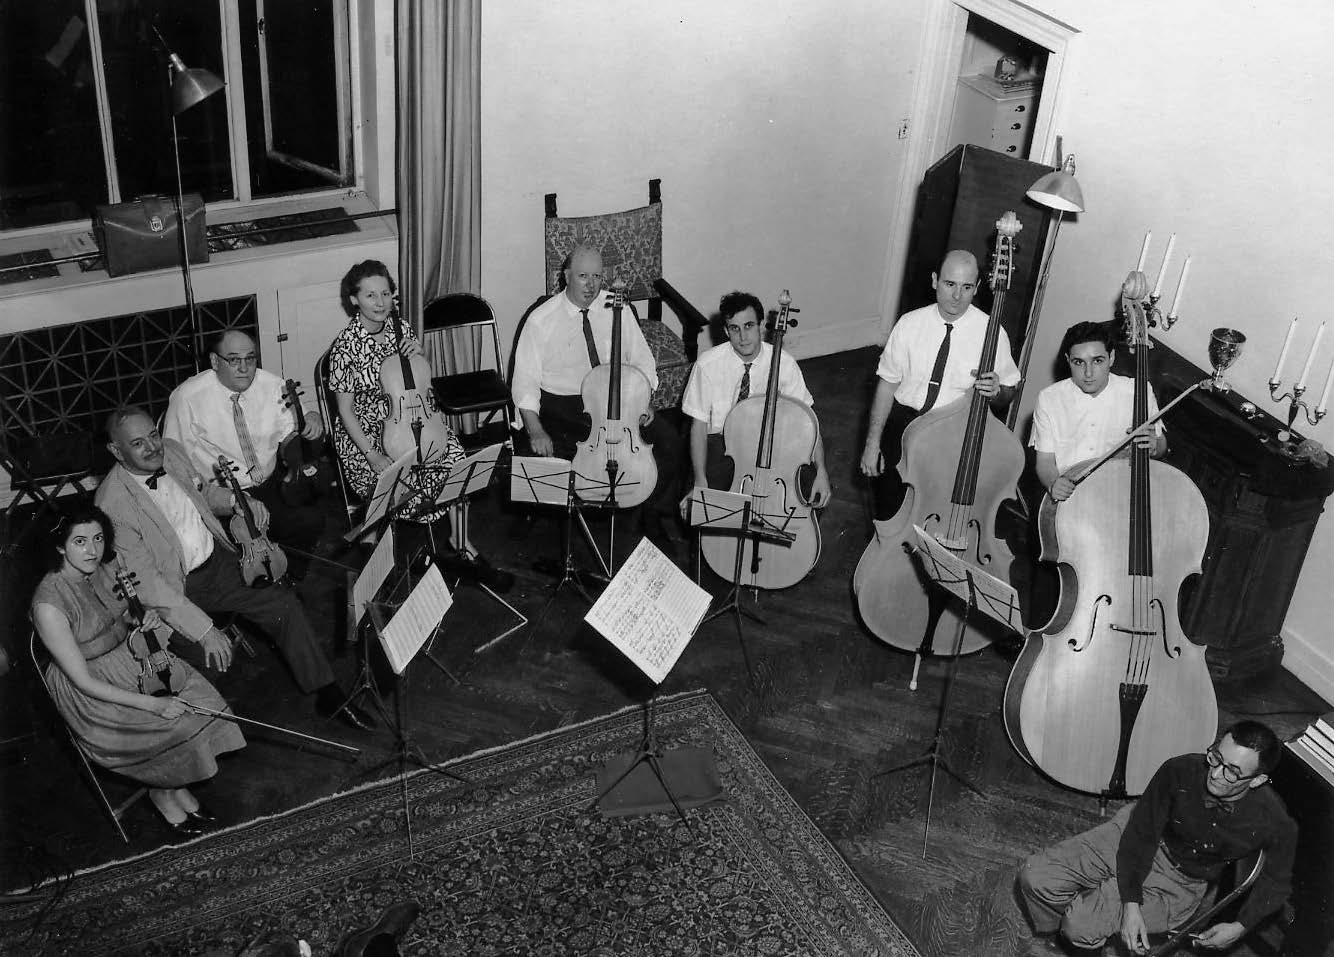 The first trial of the Hutchins violin octet, on May 24, 1964. Courtesy of the Hutchins estate.